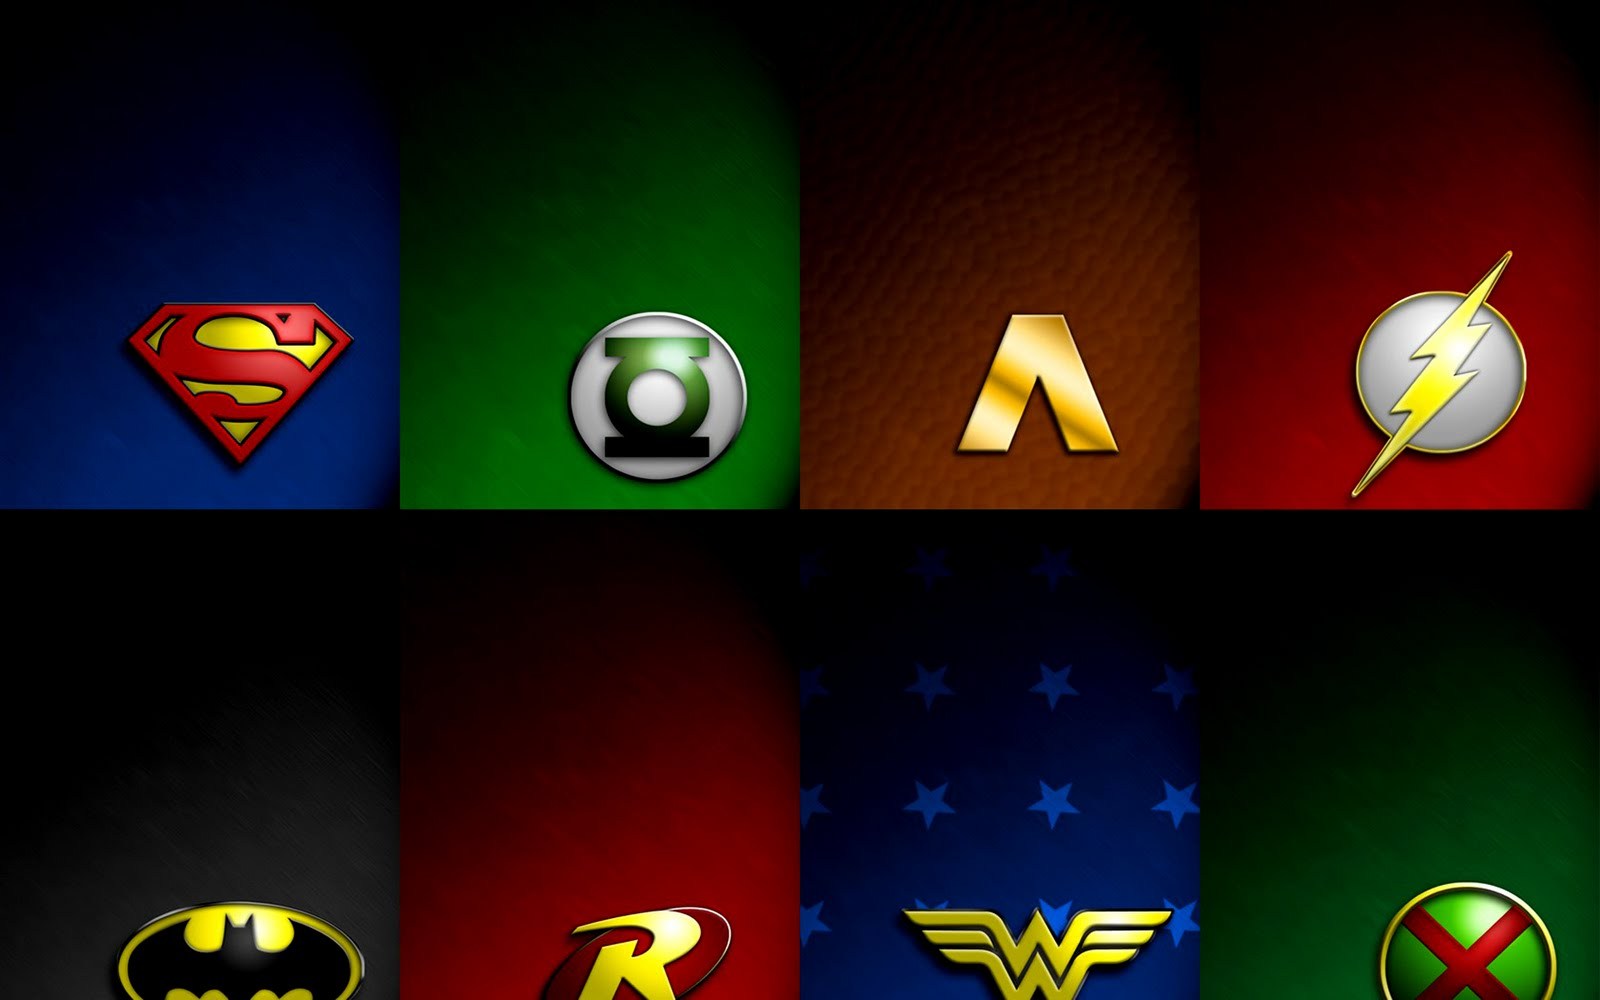 Central Wallpaper DC Comics All Super Heroes HD Wallpapers 1600x1000